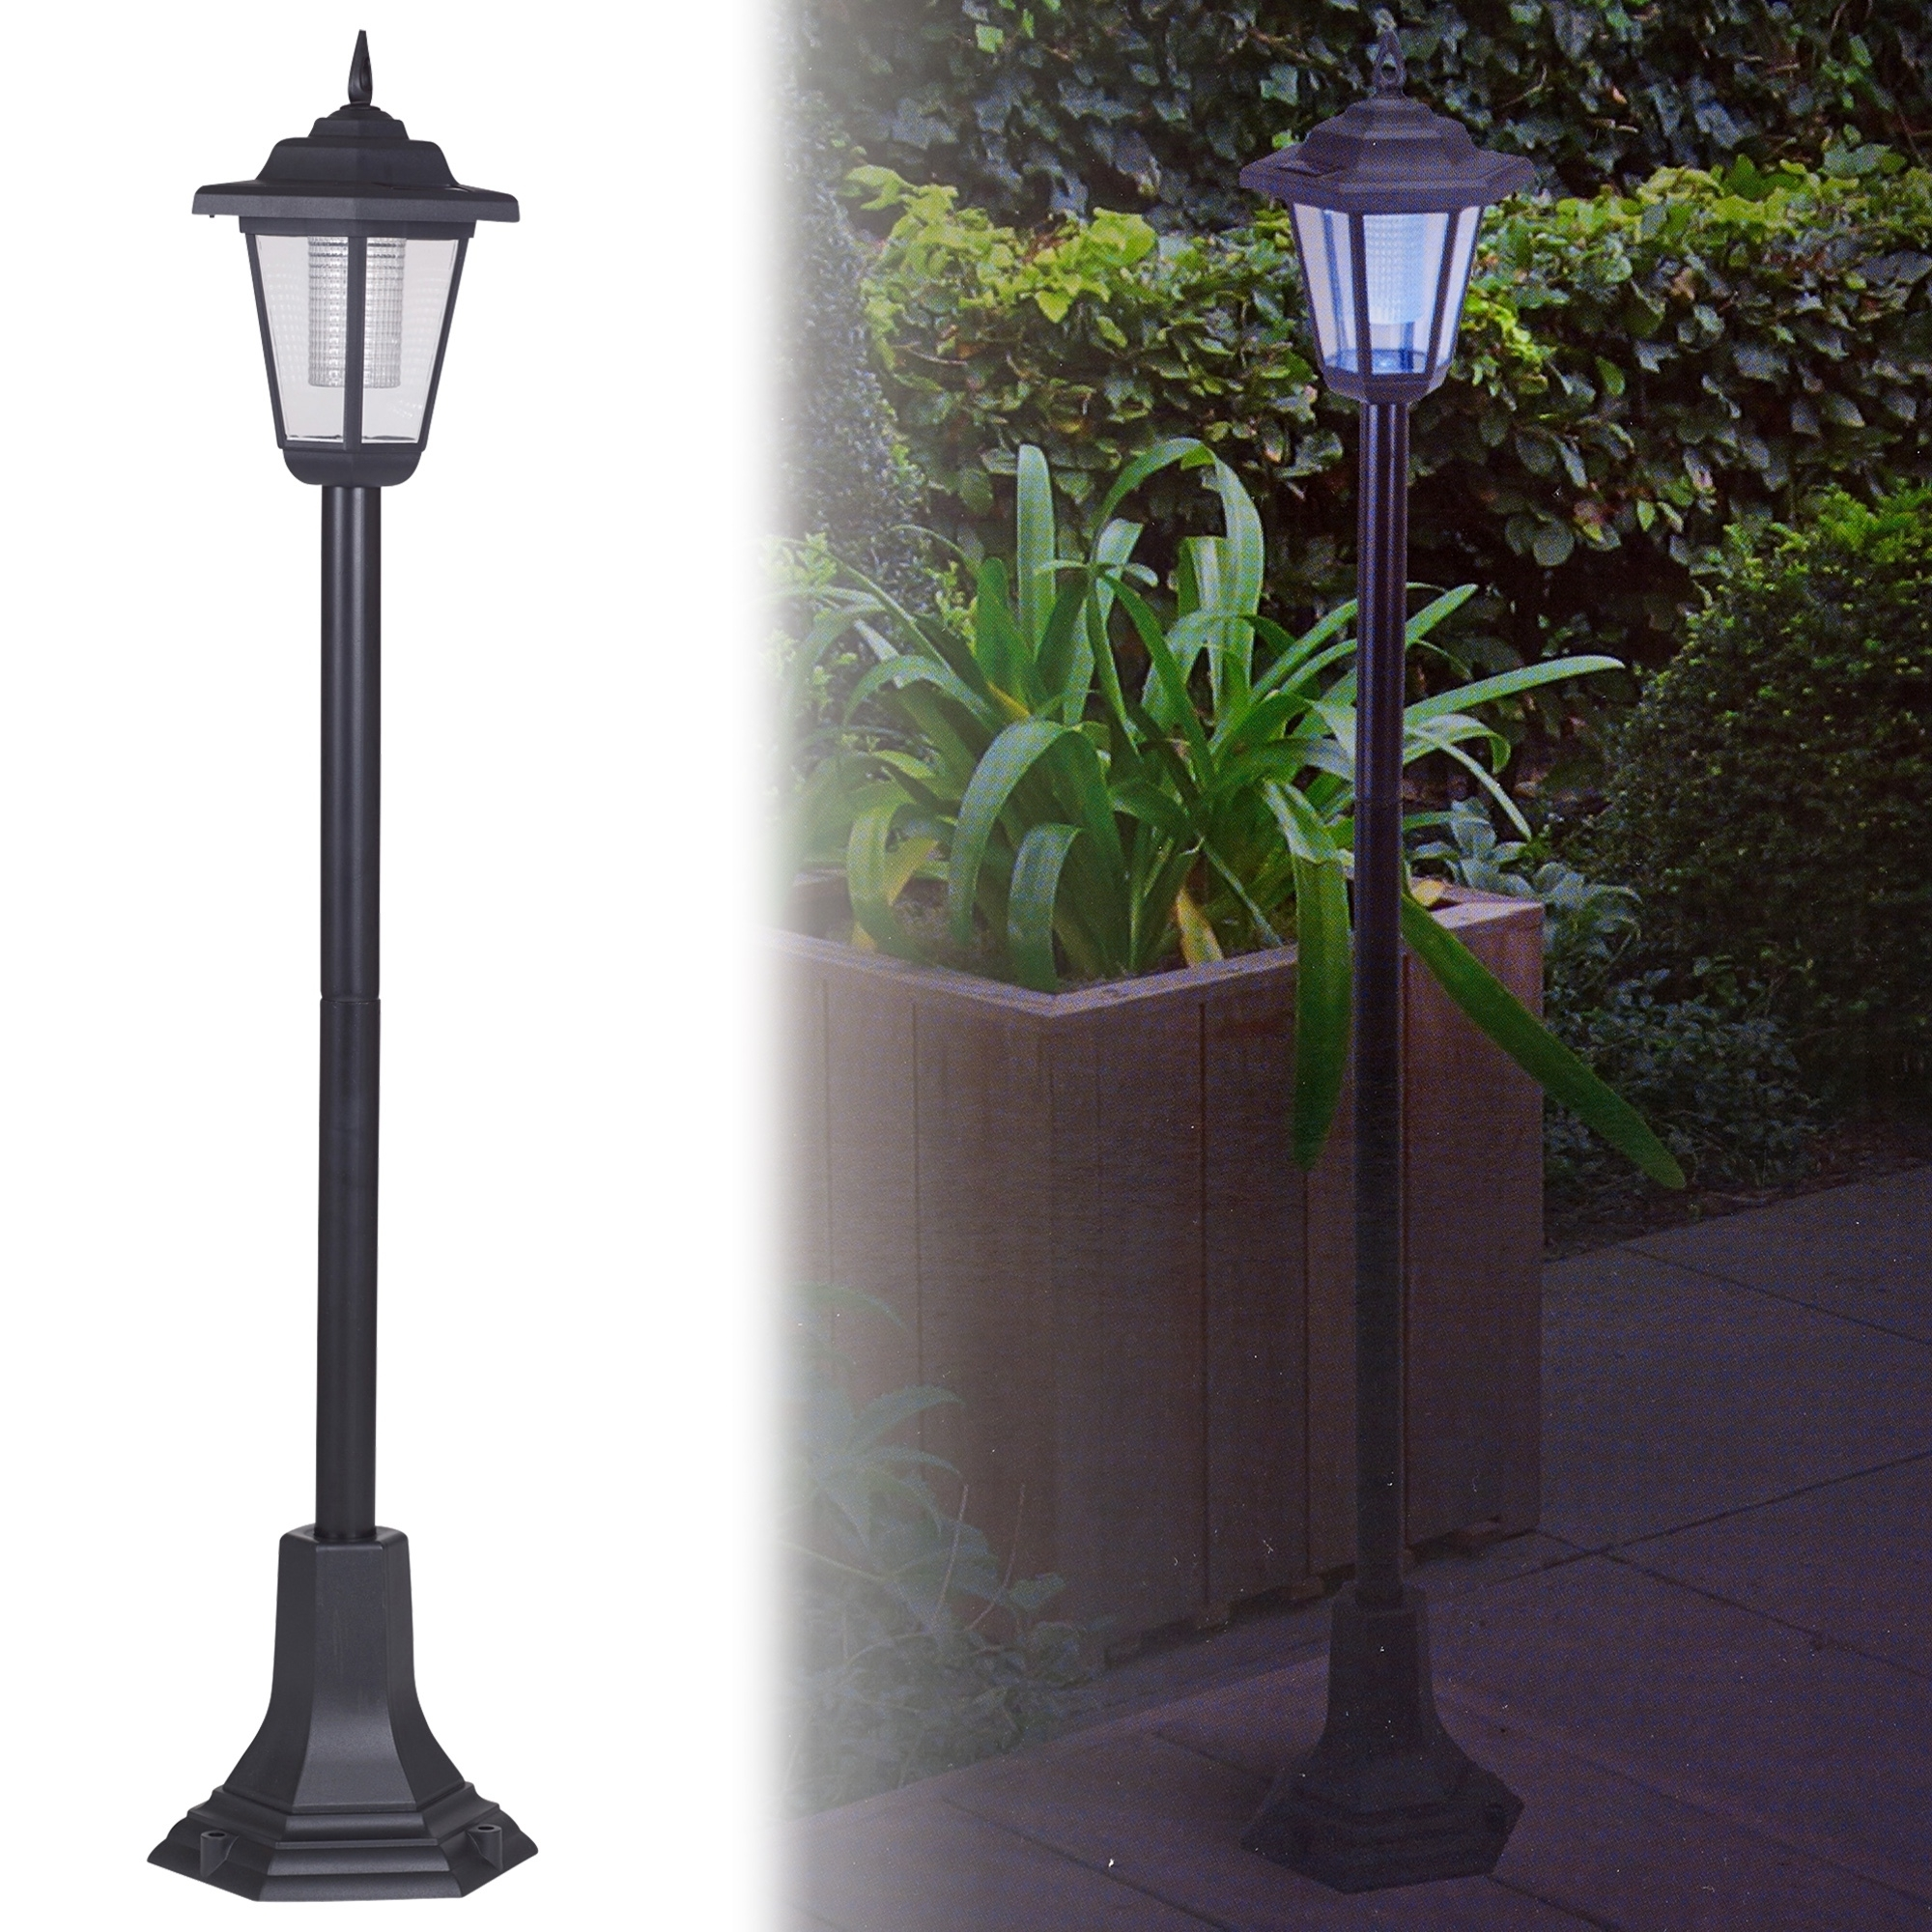 Recent Solar Powered Garden Lights Lantern Lamp Black Led Pathway Driveway Intended For Outdoor Ground Lanterns (View 17 of 20)